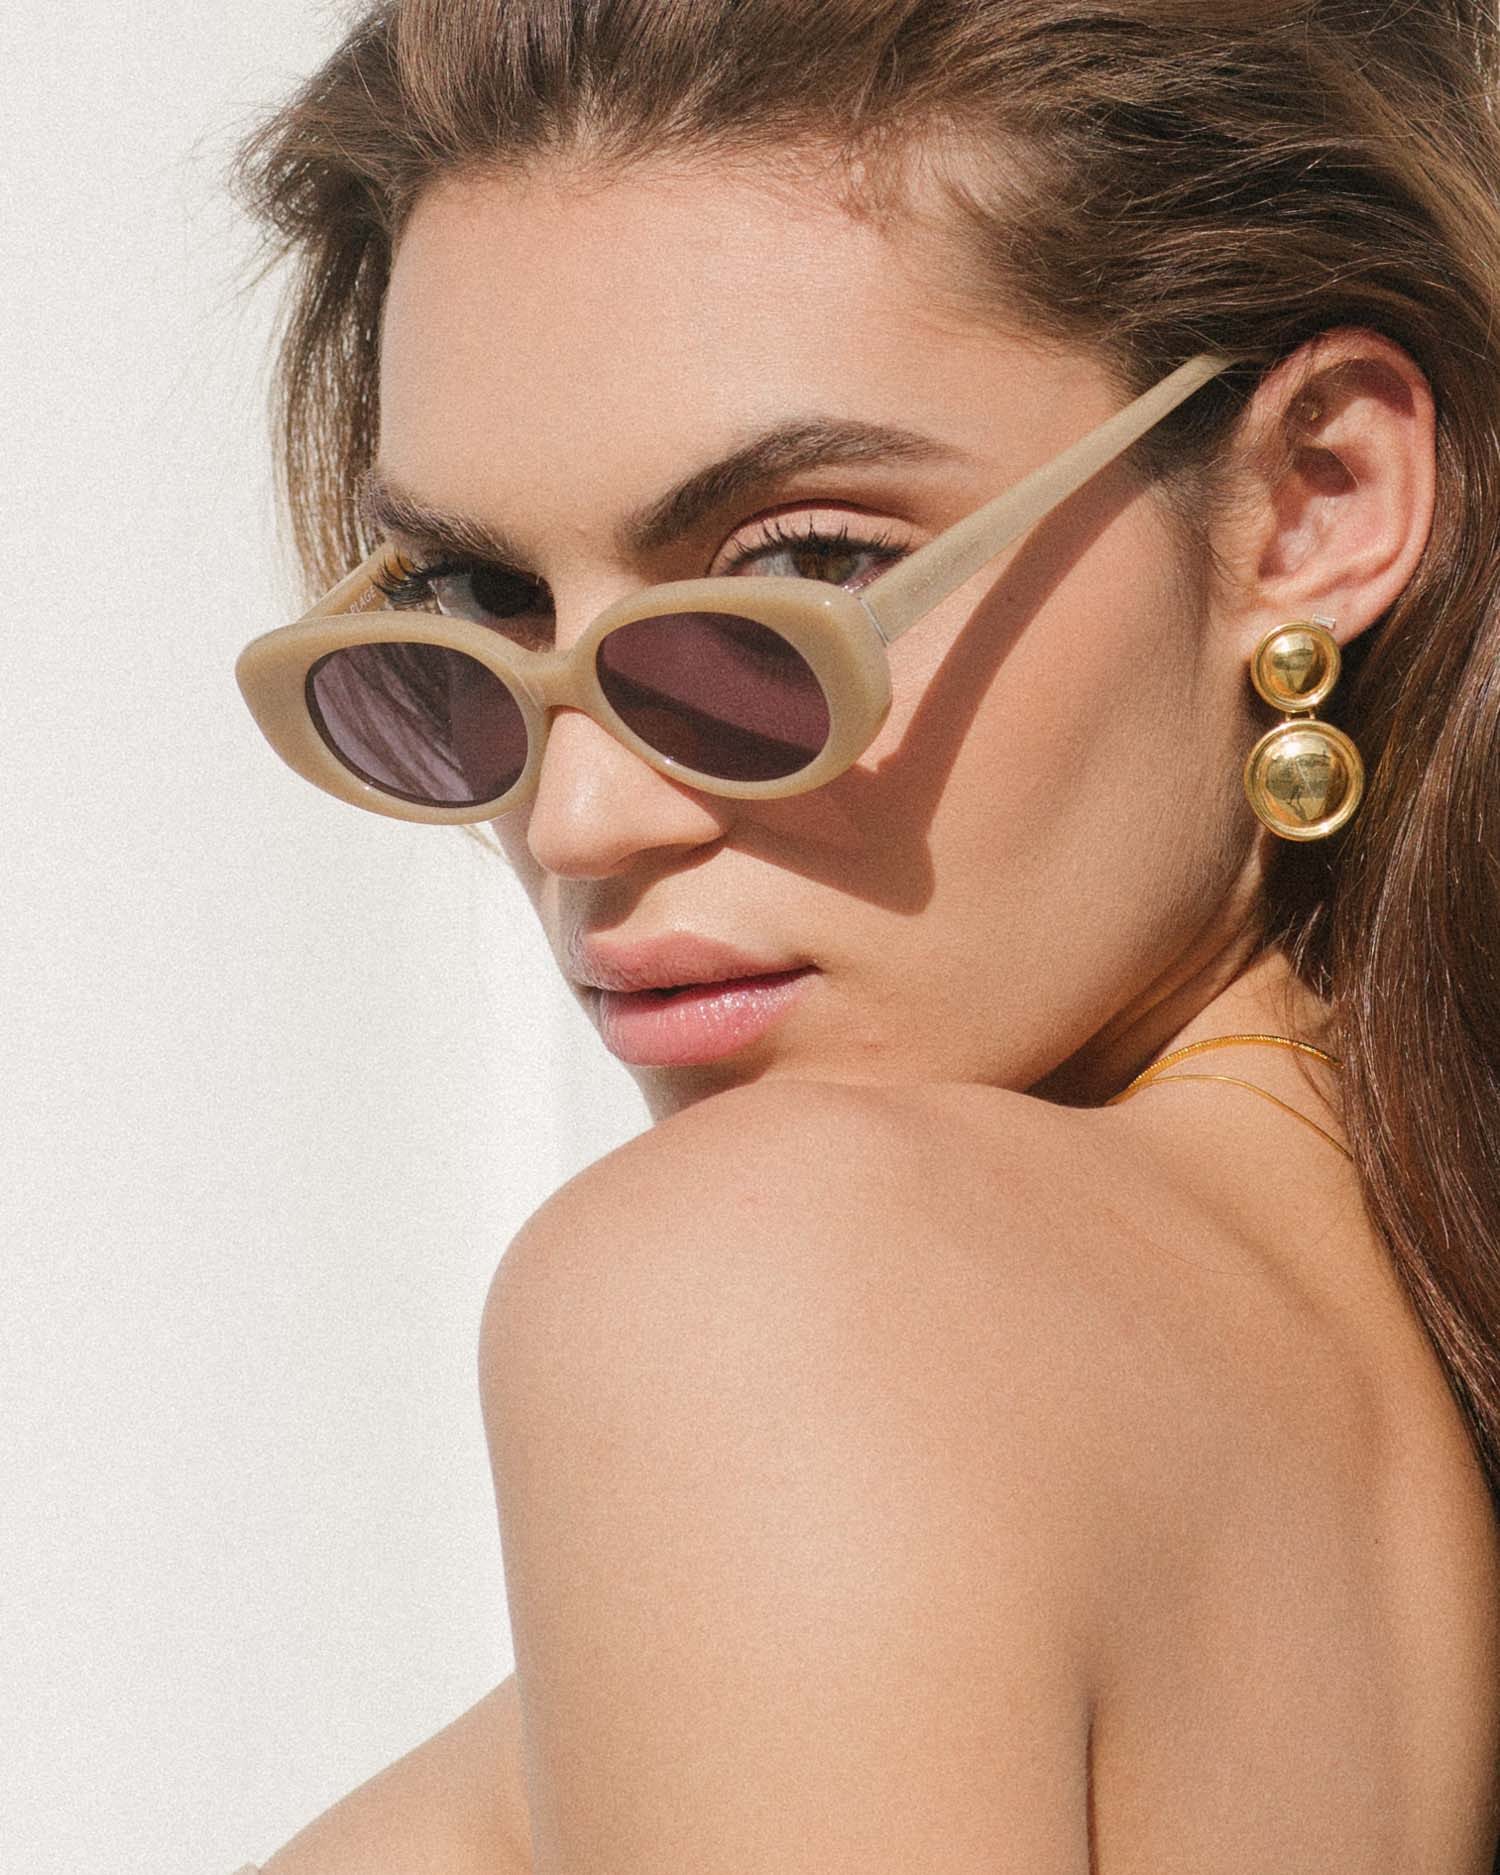 Velvet Canyon A La Plage Tan Sunglasses vintage 60s 70s inspired sunnies